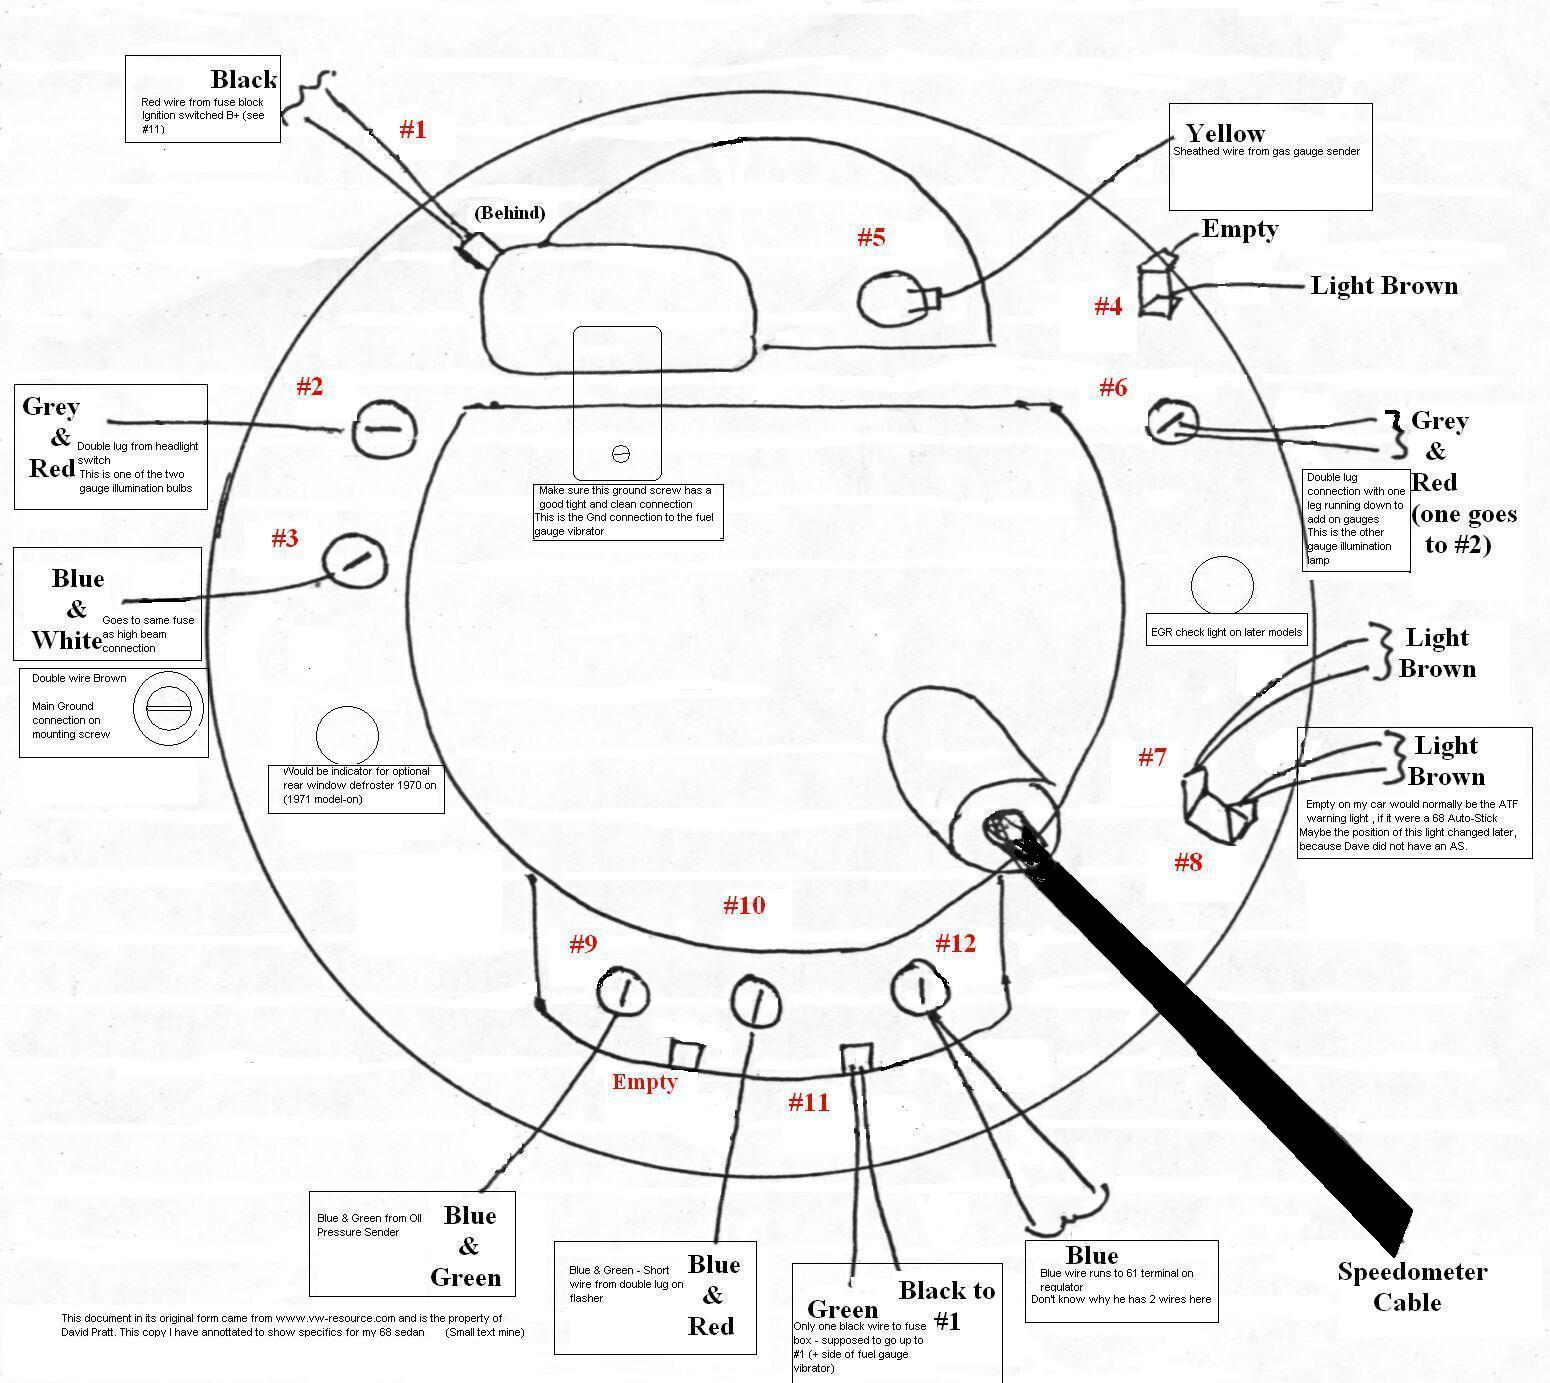 67 Beetle Turn Signal Wiring Diagram Library Vw Light Image May Have Been Reduced In Size Click To View Fullscreen